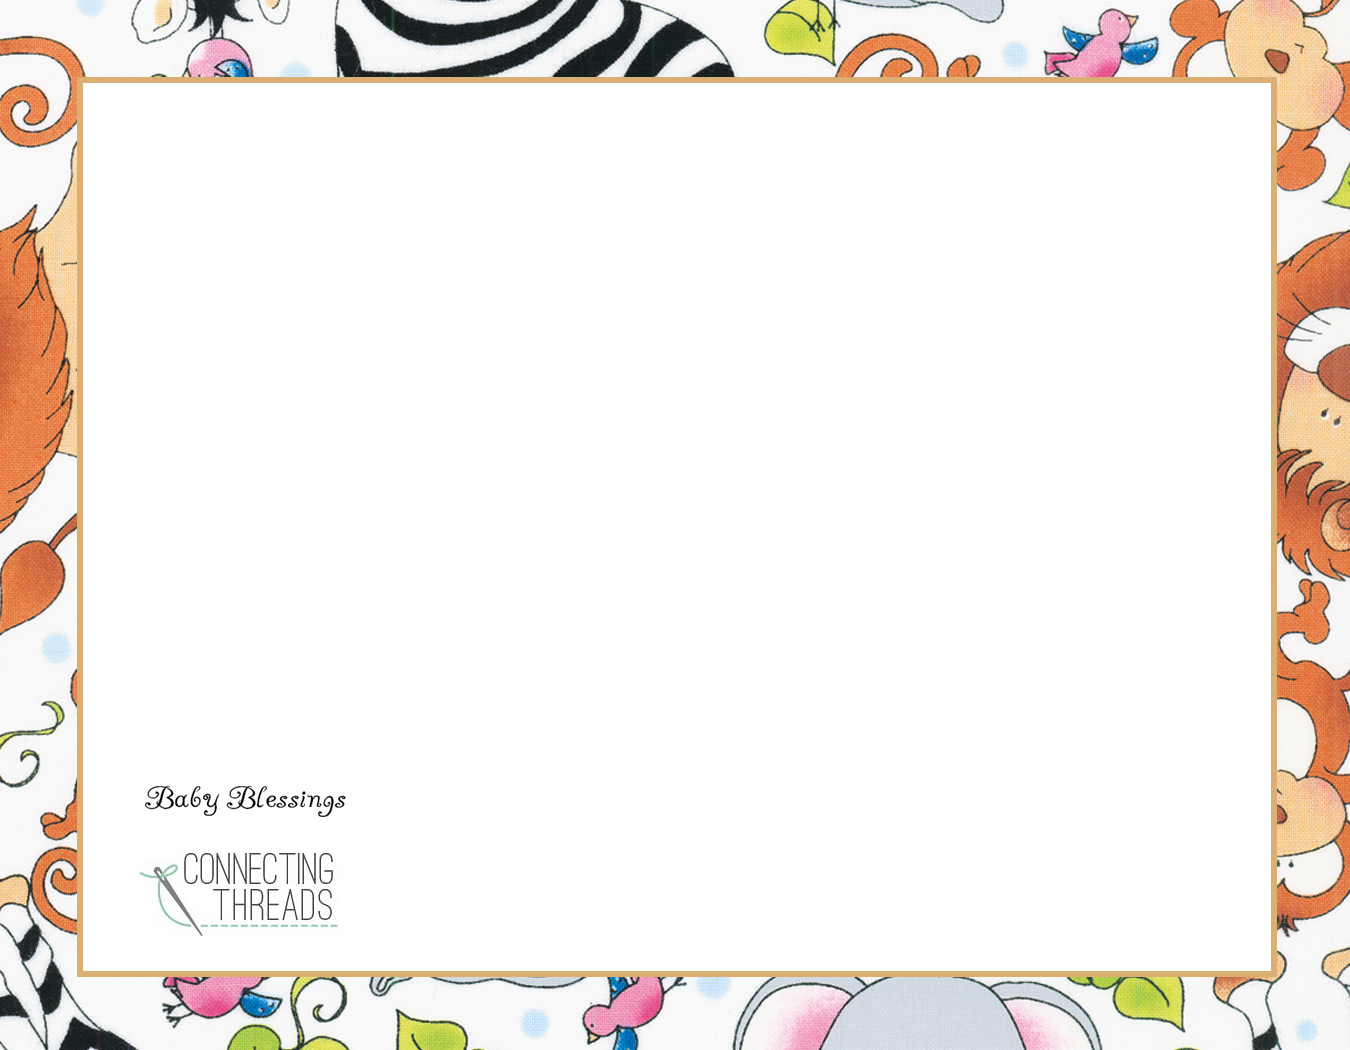 Quilt Label Templates : 8 Best Images of Baby Quilt Labels Printable - Free Printable Baby Quilt Labels, Free Printable ...